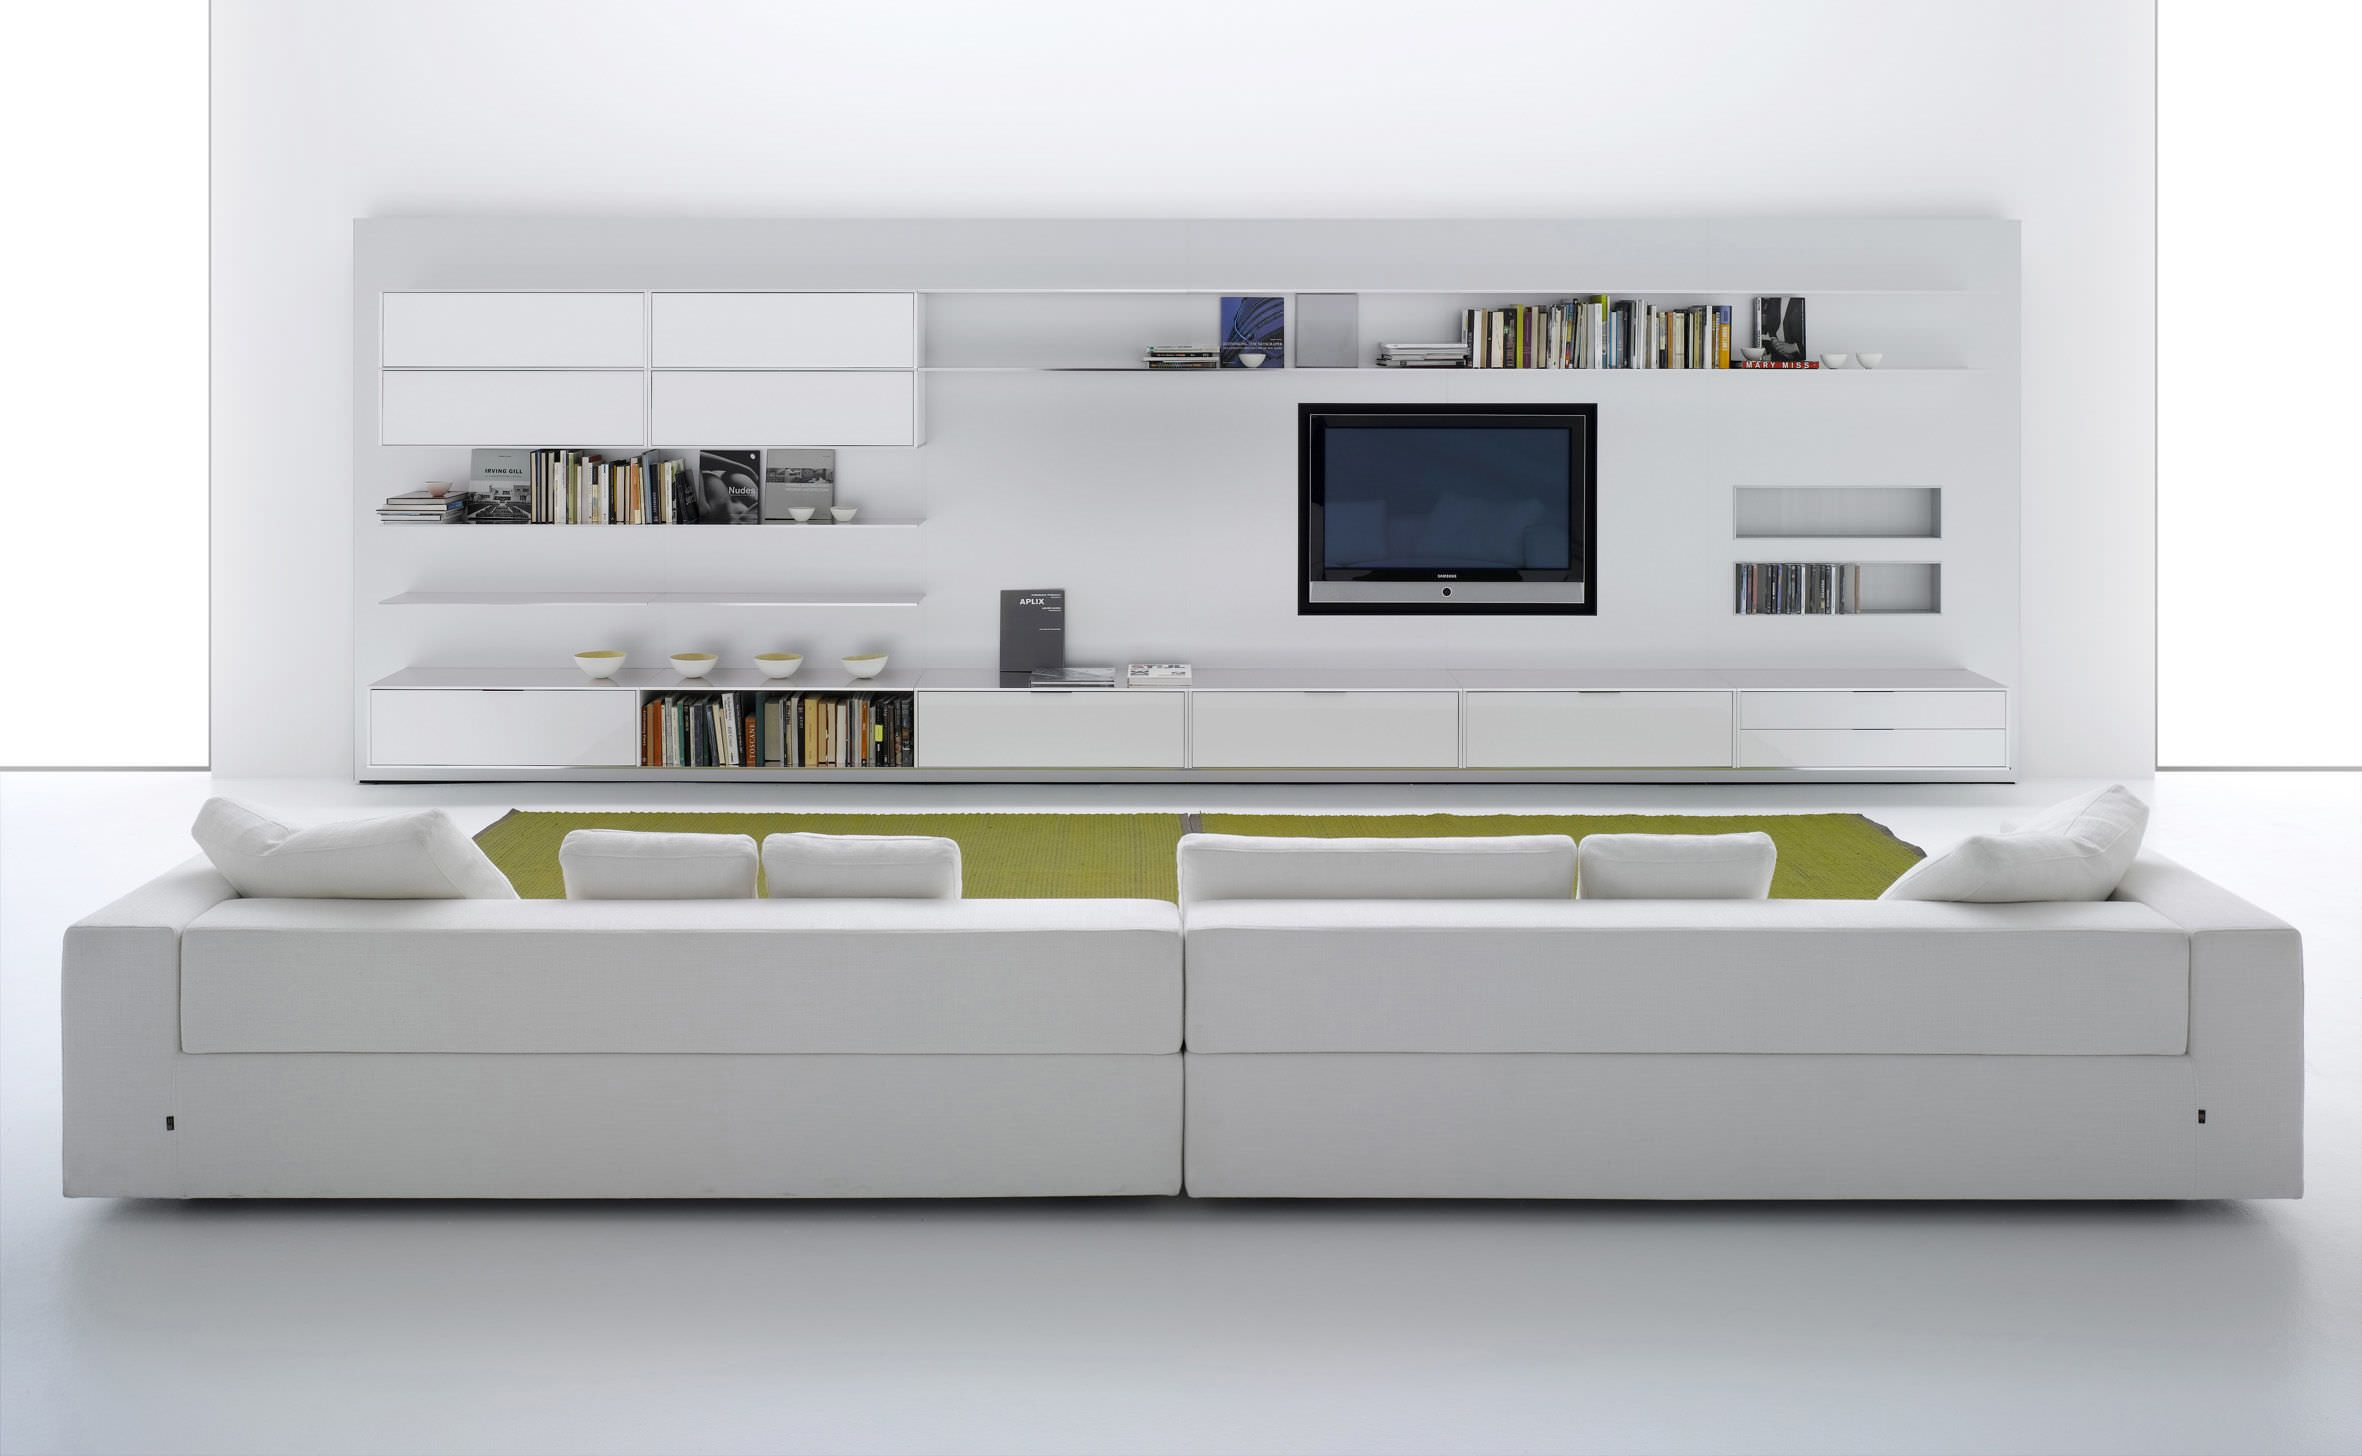 Gentil Contemporary TV Wall Unit / Aluminum / MDF / Modular   ELEVENFIVE By Bruno  Fattorini